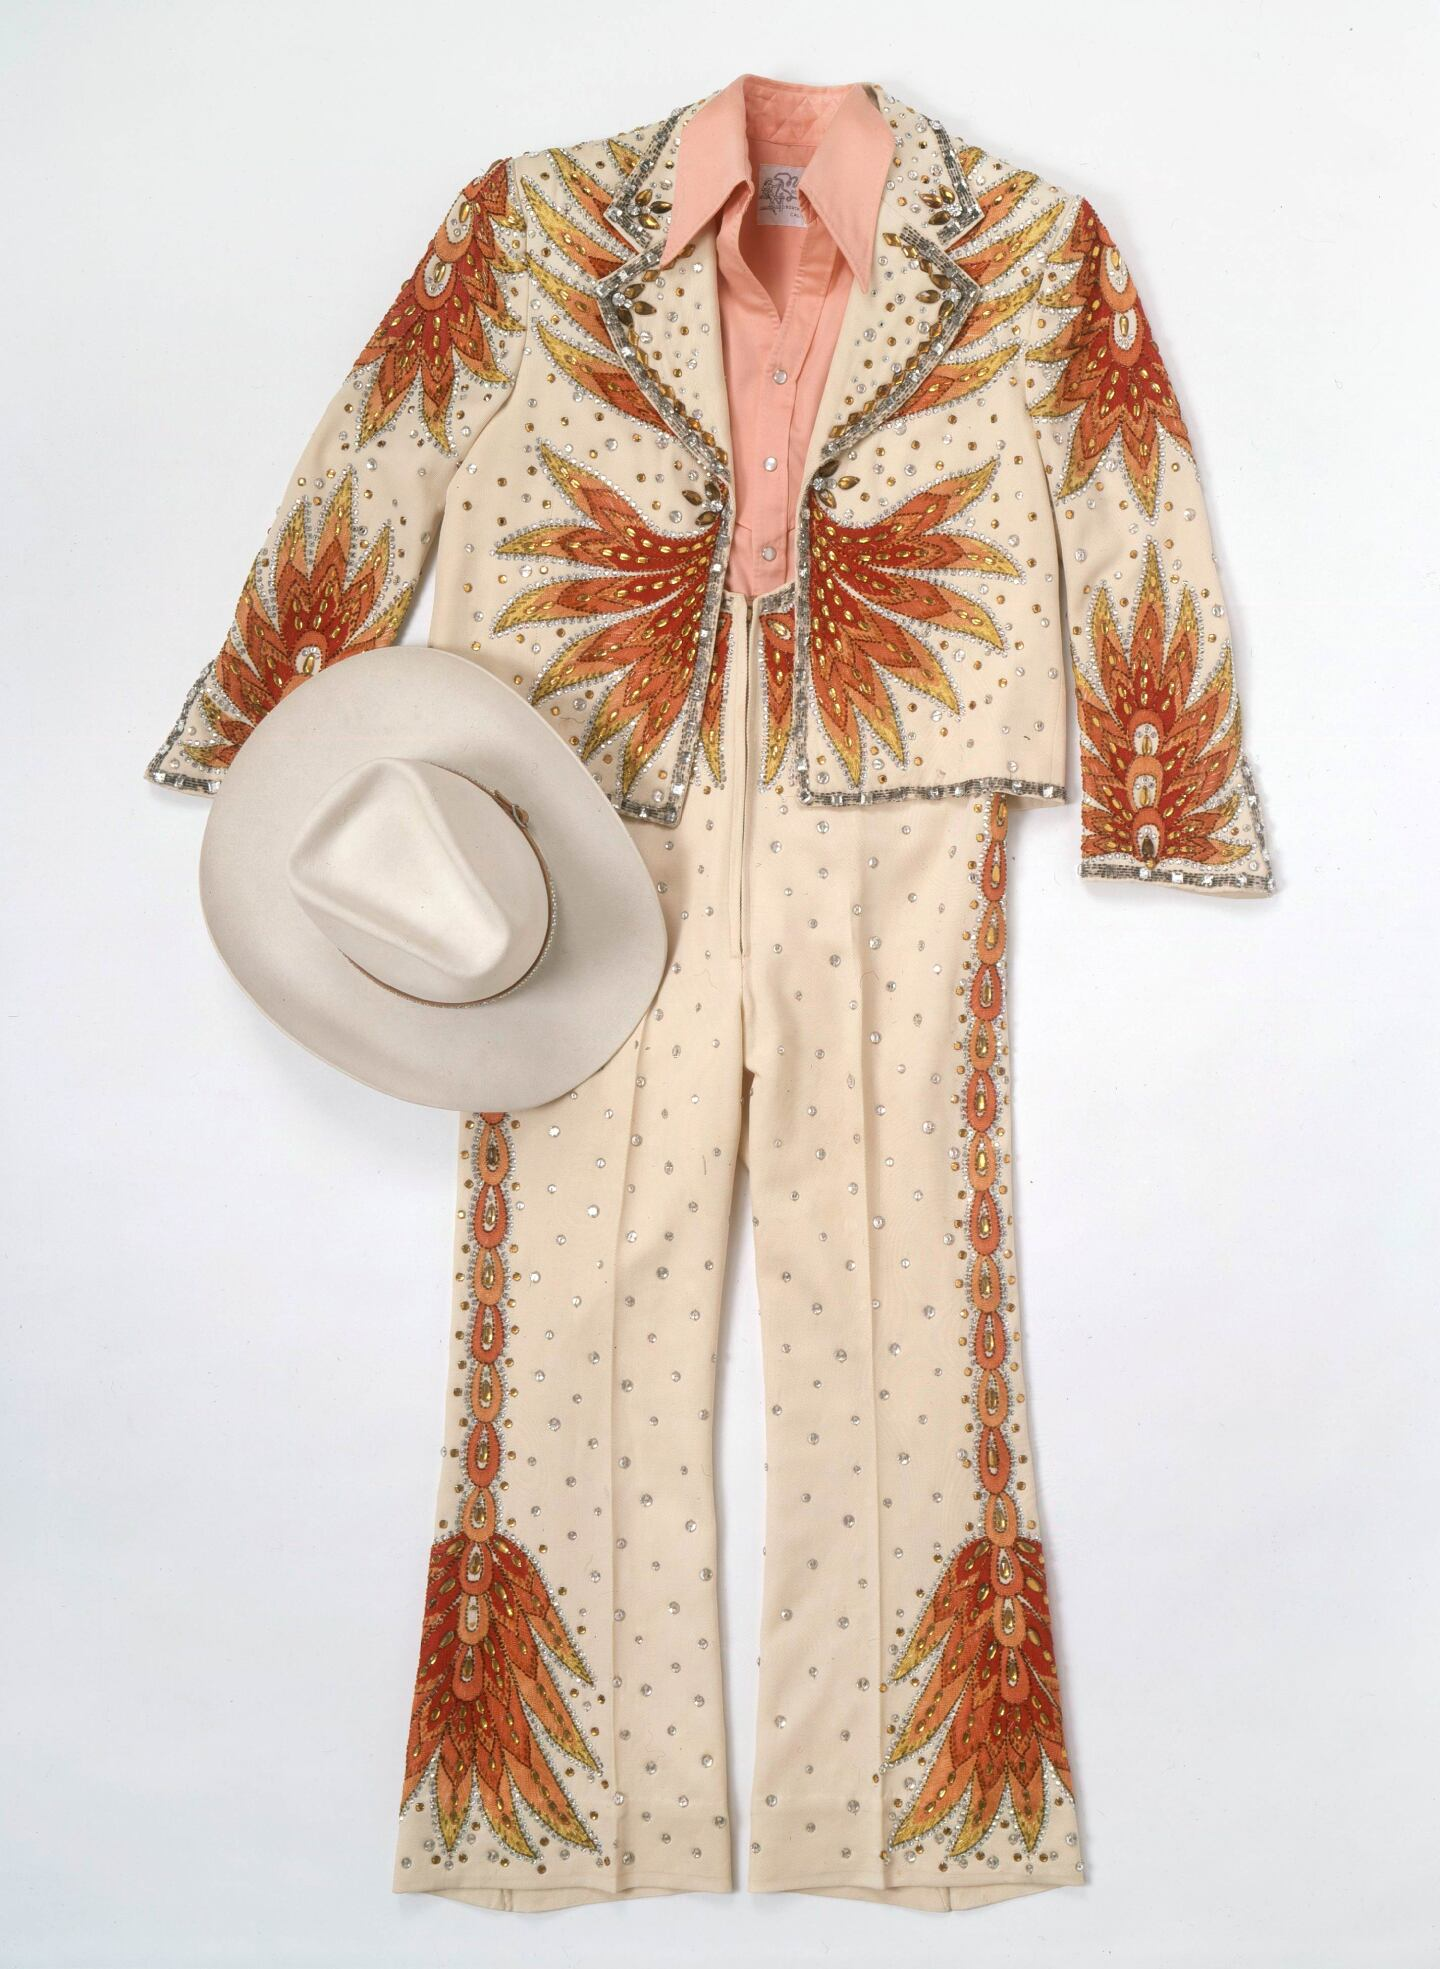 Nudie's personal outfit | Courtesy of Autry Museum of the American West